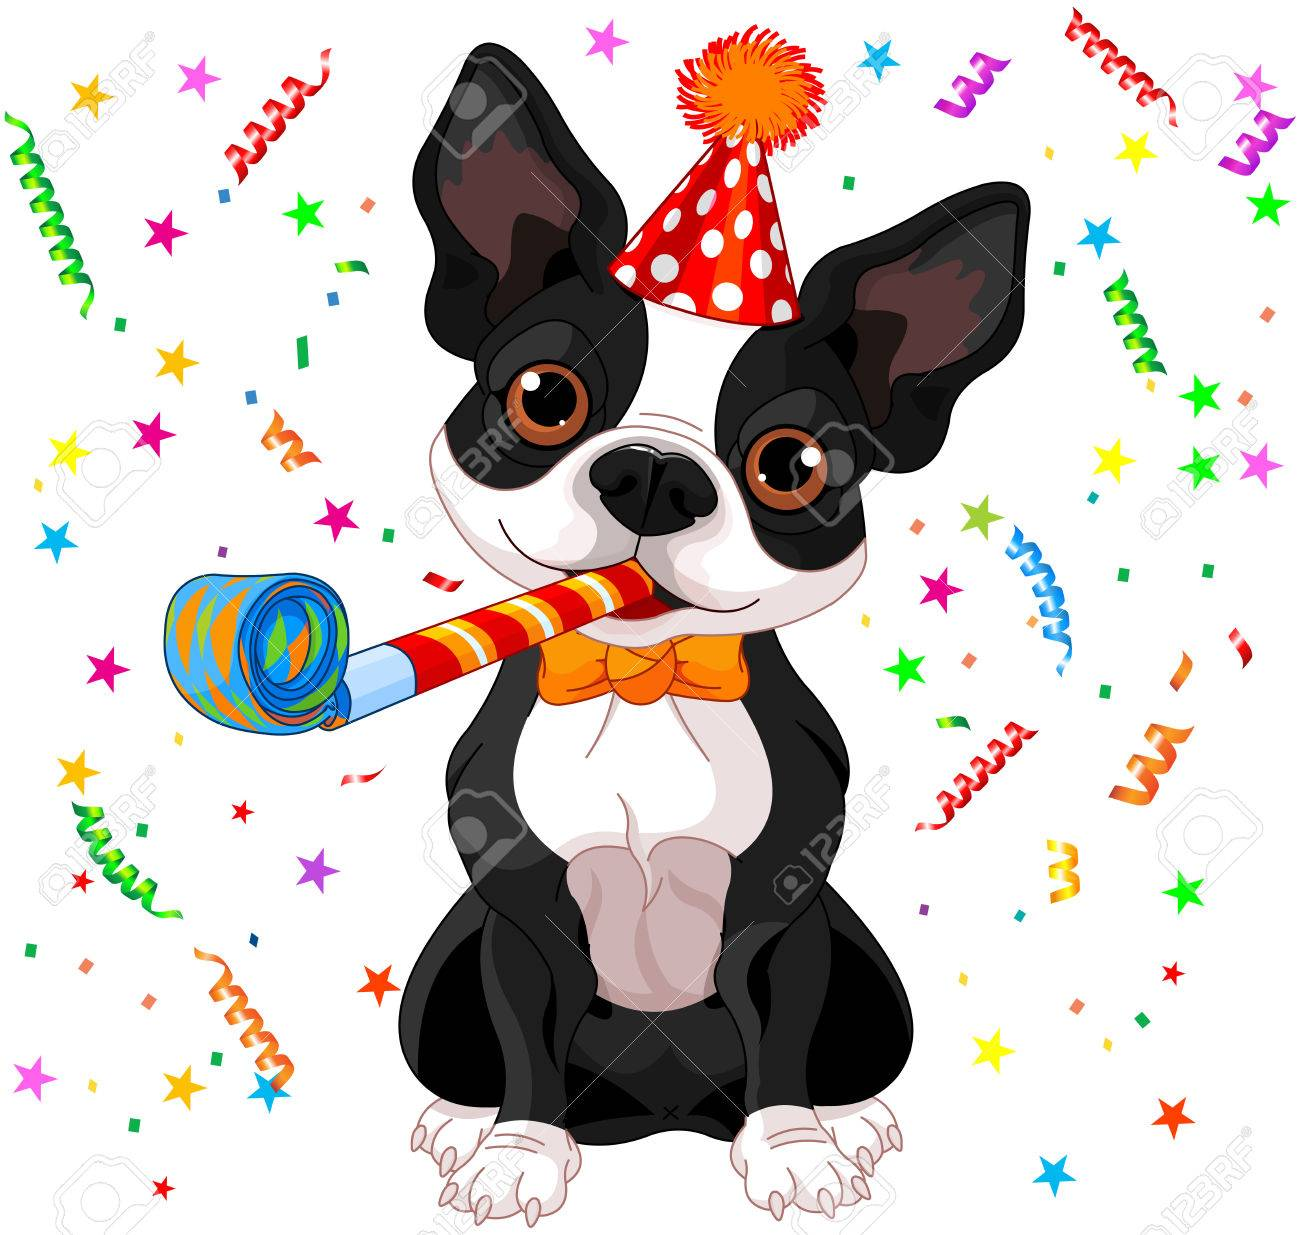 Faire la différence entre le trottoir et la route - Page 4 35588778-illustration-of-cute-boston-terrier-celebrating